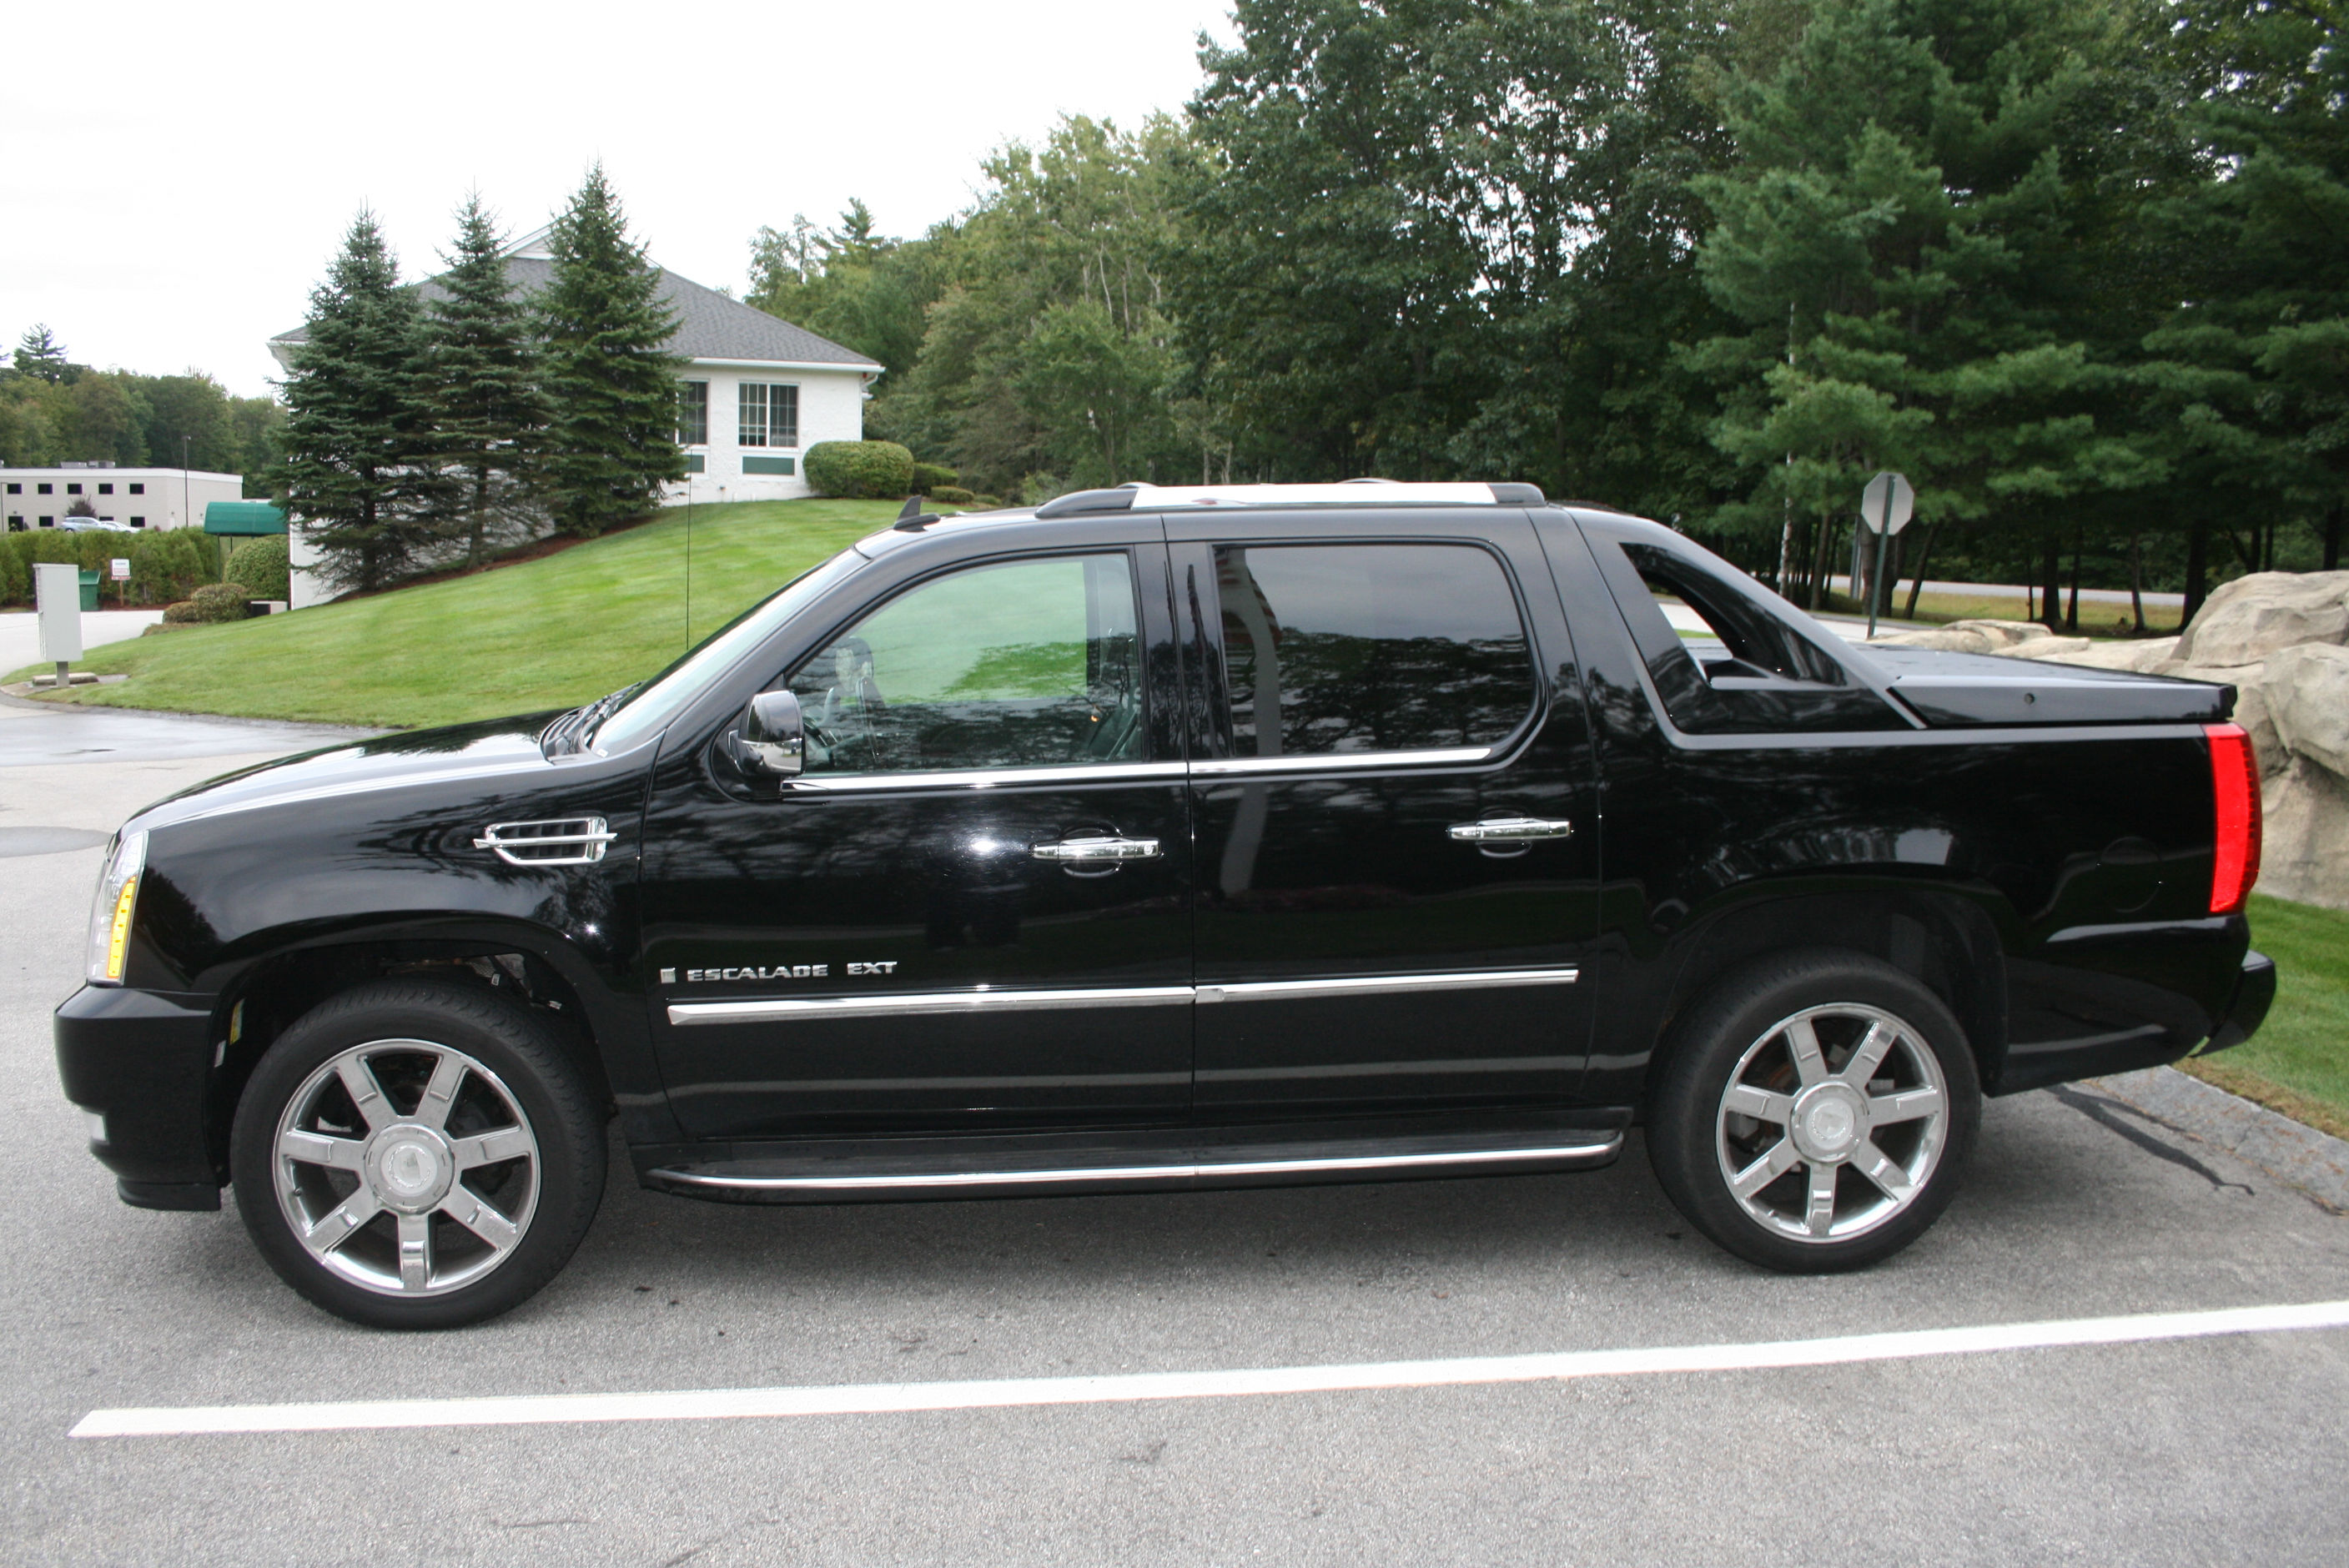 sales ext truck cadillac pickup forums img complete escalade suv car sut net awd